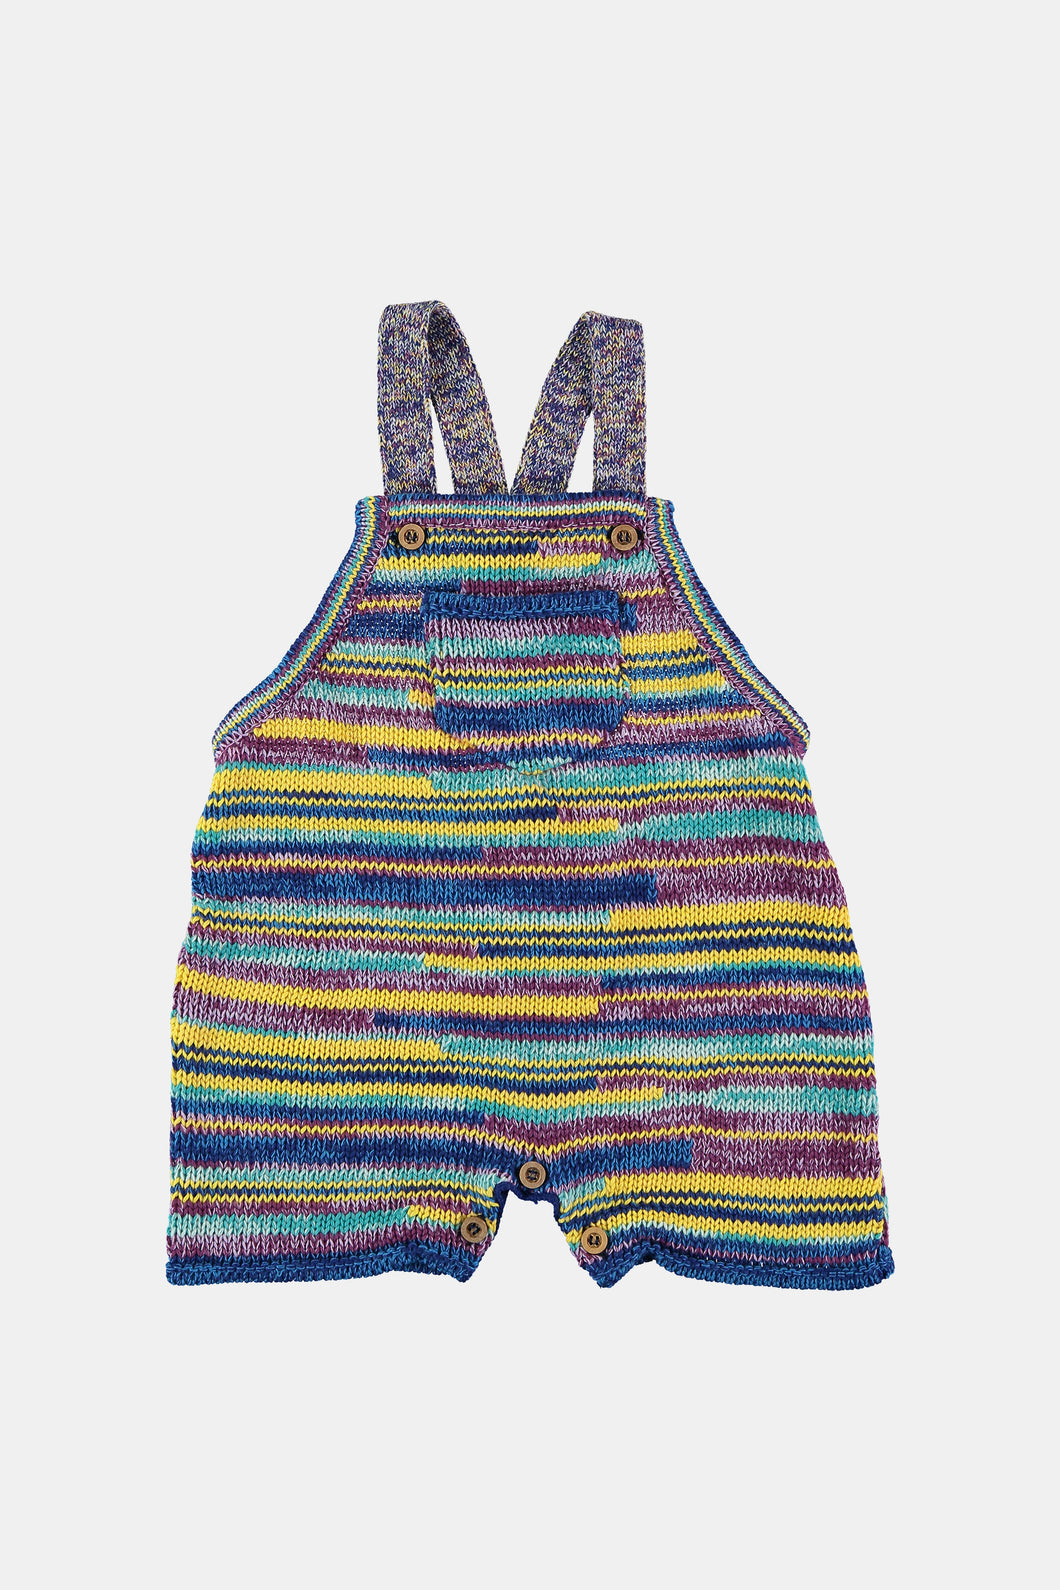 Coco Au Lait All Over Unisex Baby Knit Precious Overall Overall Multicolor Stripes 1